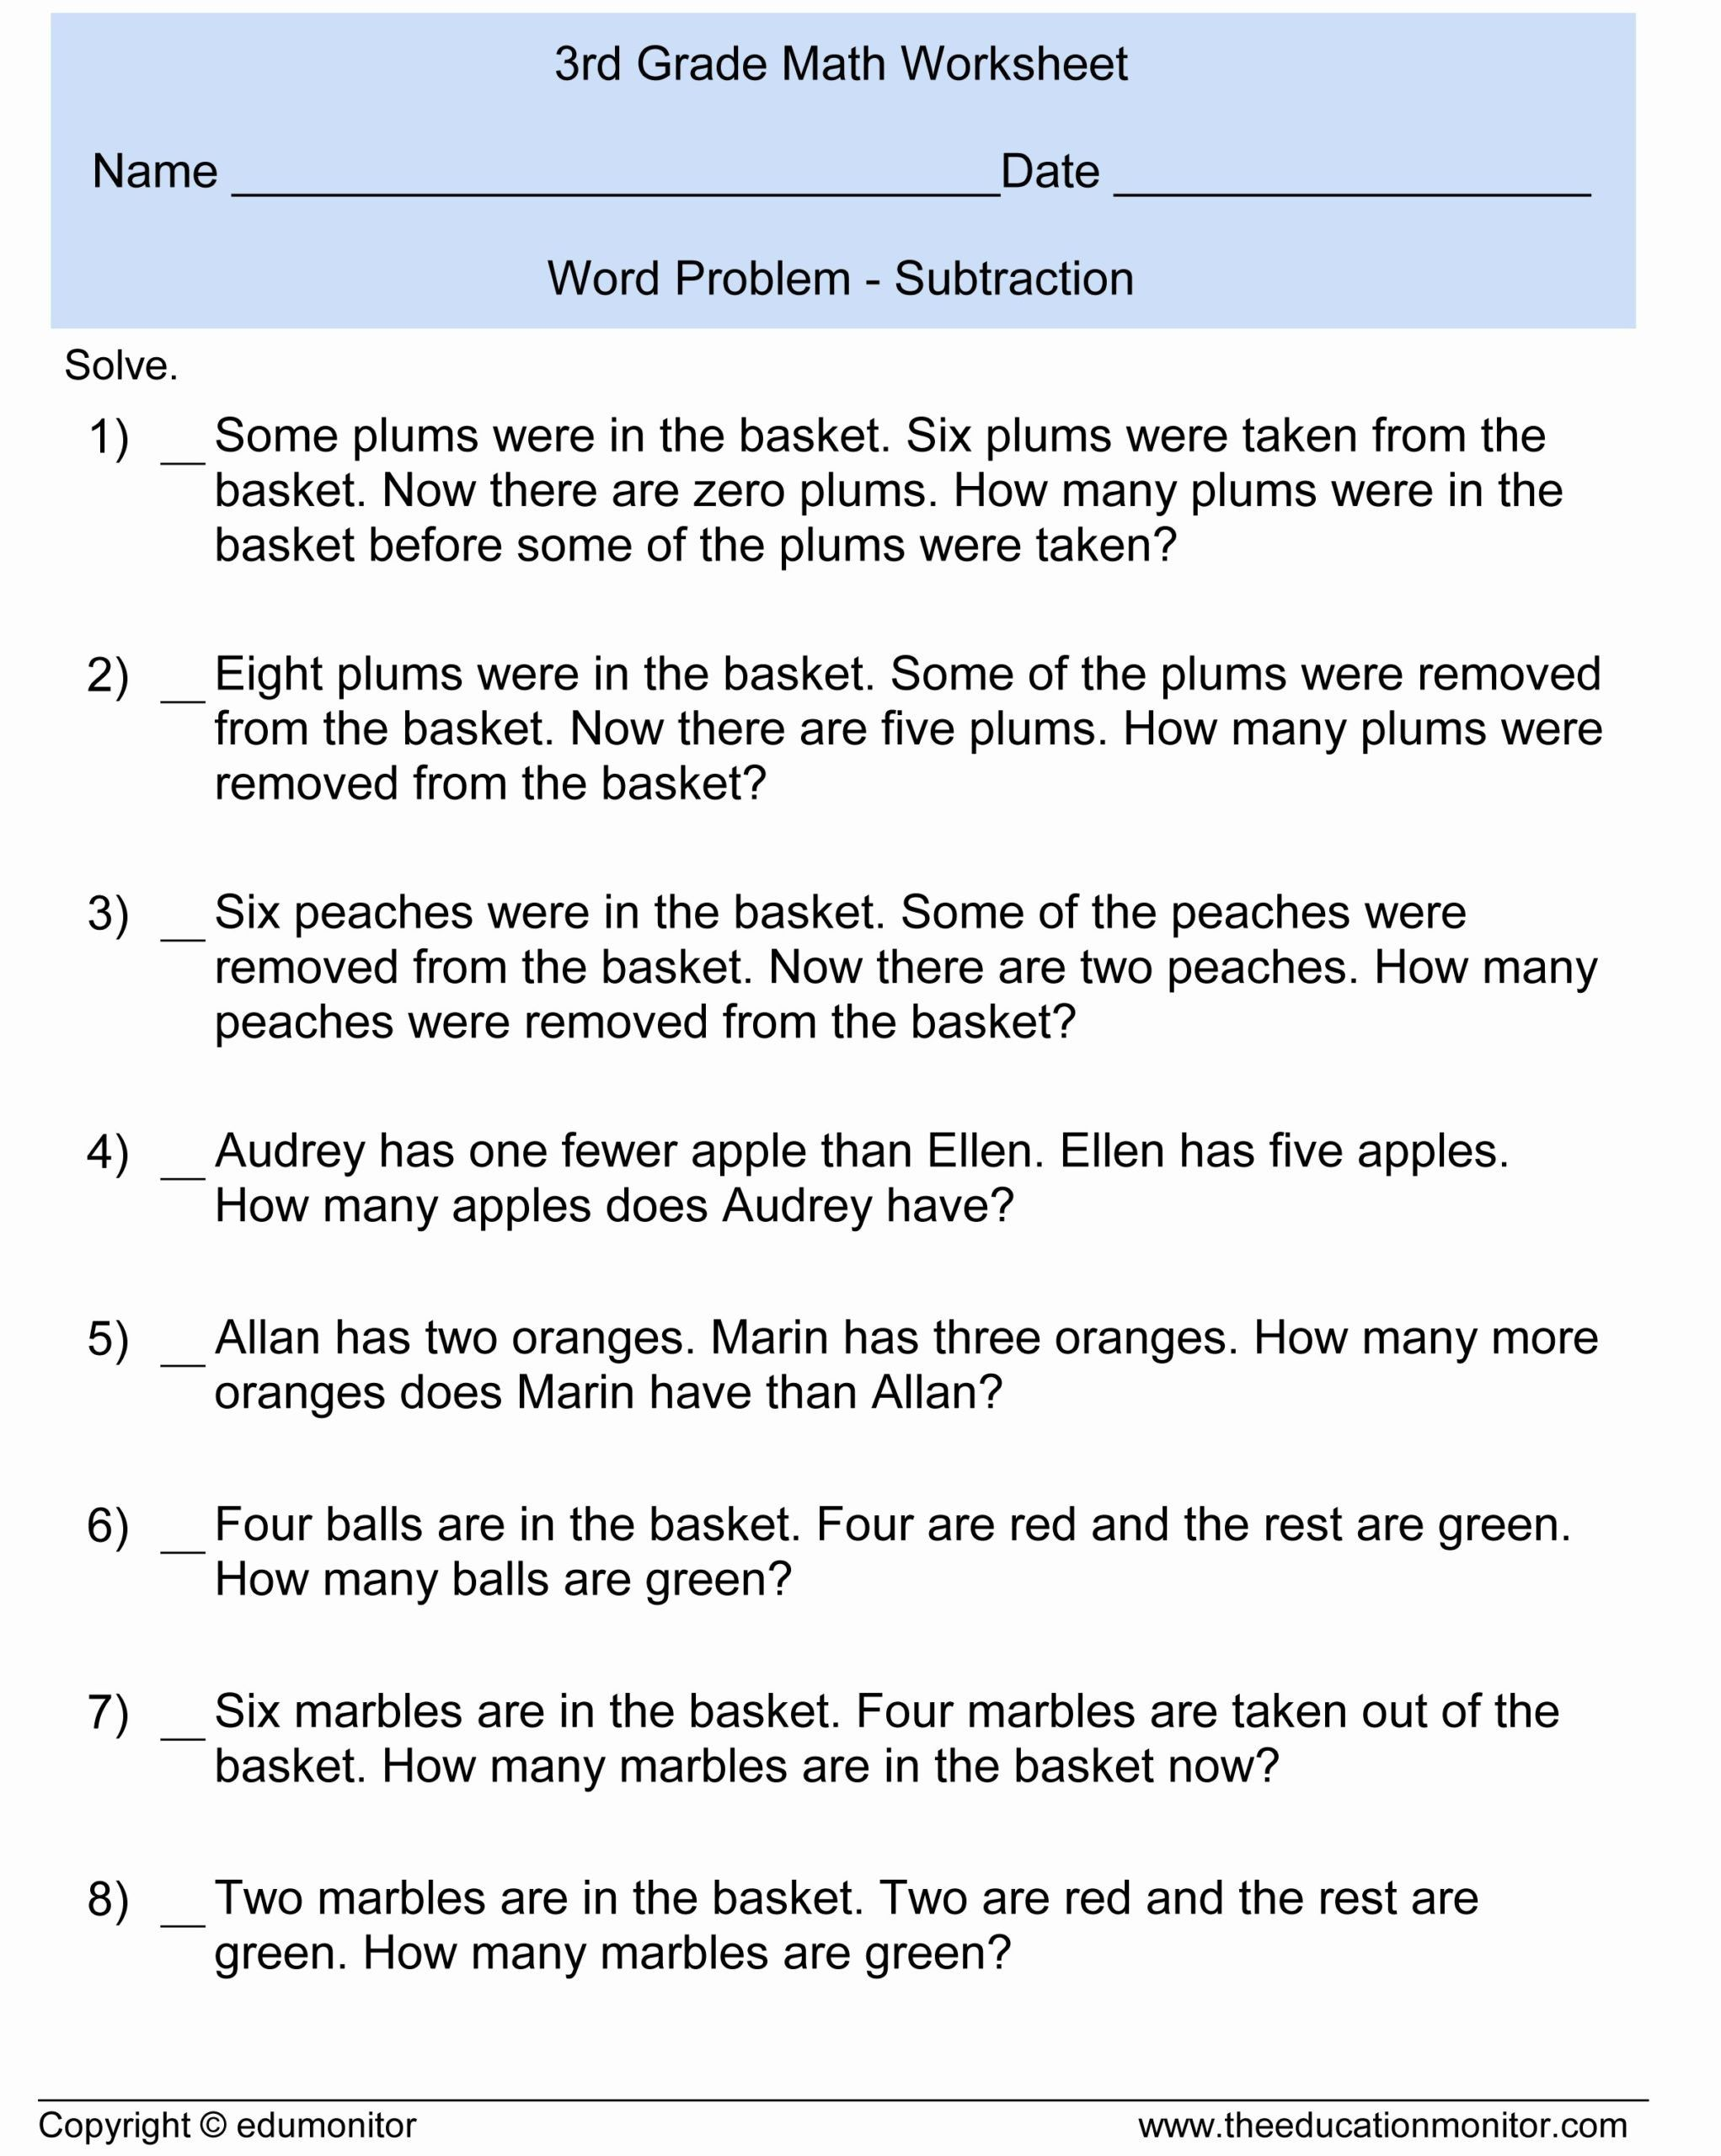 medium resolution of Multi Step Math Word Problems Worksheets   Printable Worksheets and  Activities for Teachers